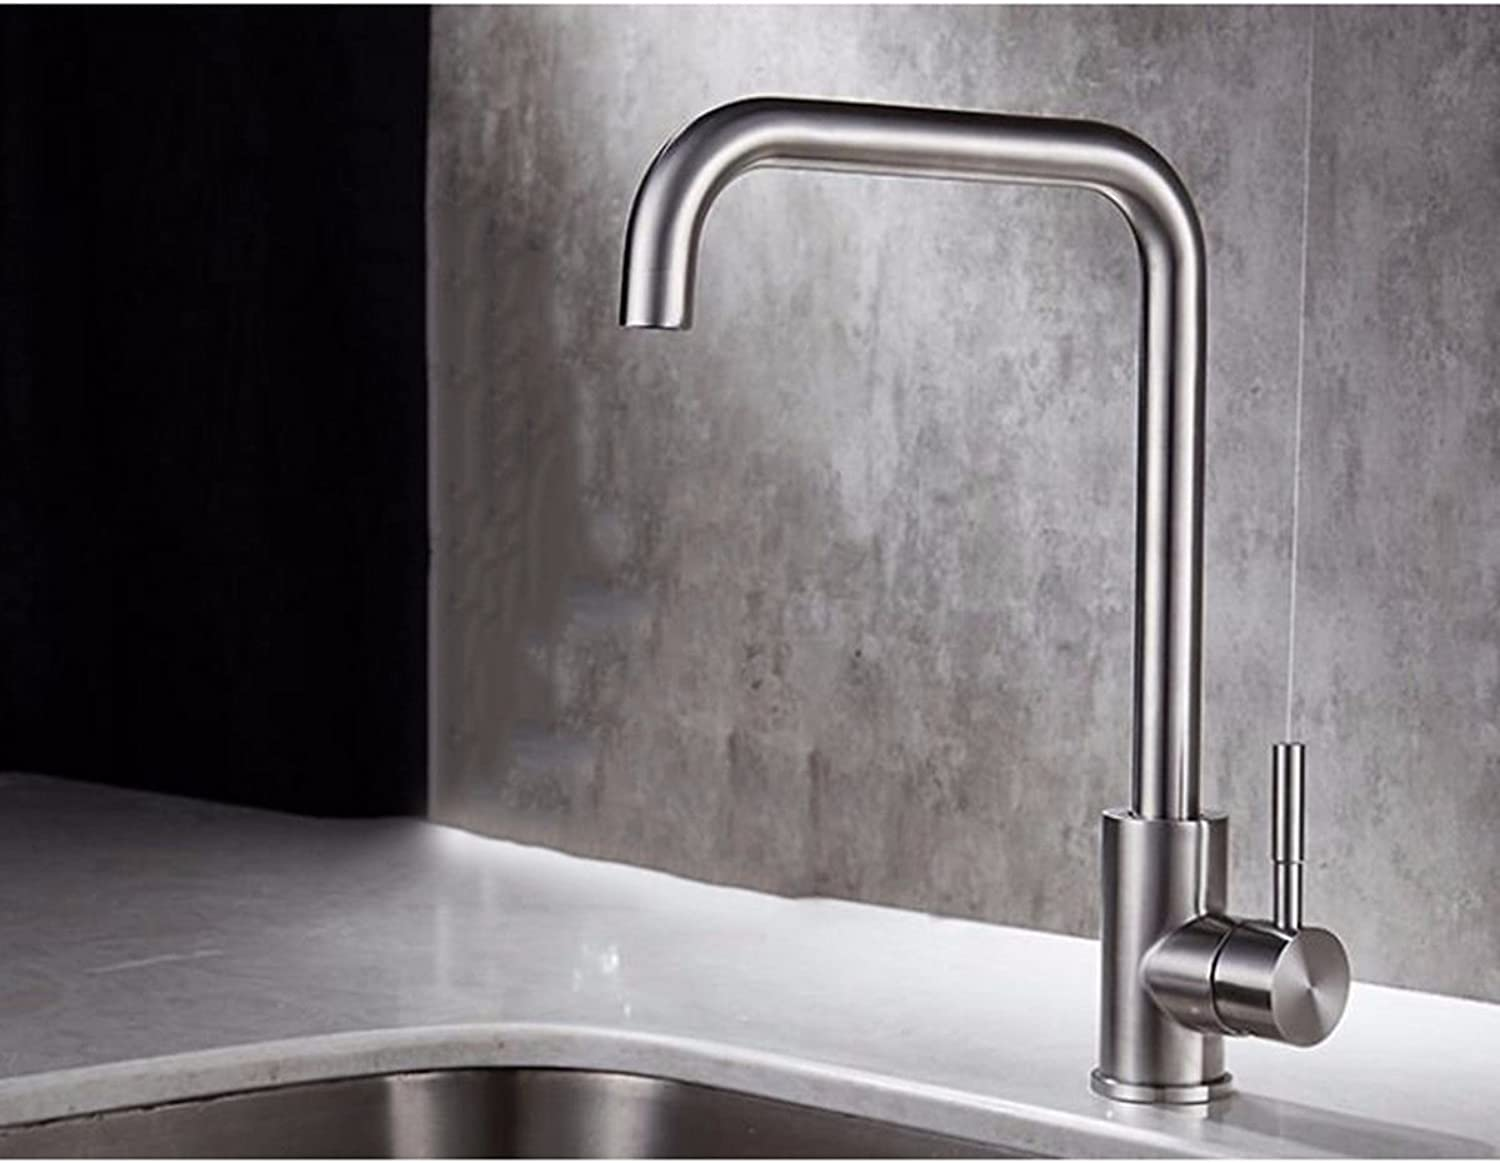 XPYFaucet Faucet Tap Taps Kitchen hot and cold greenical sink thickened sink brushed stainless steel, B